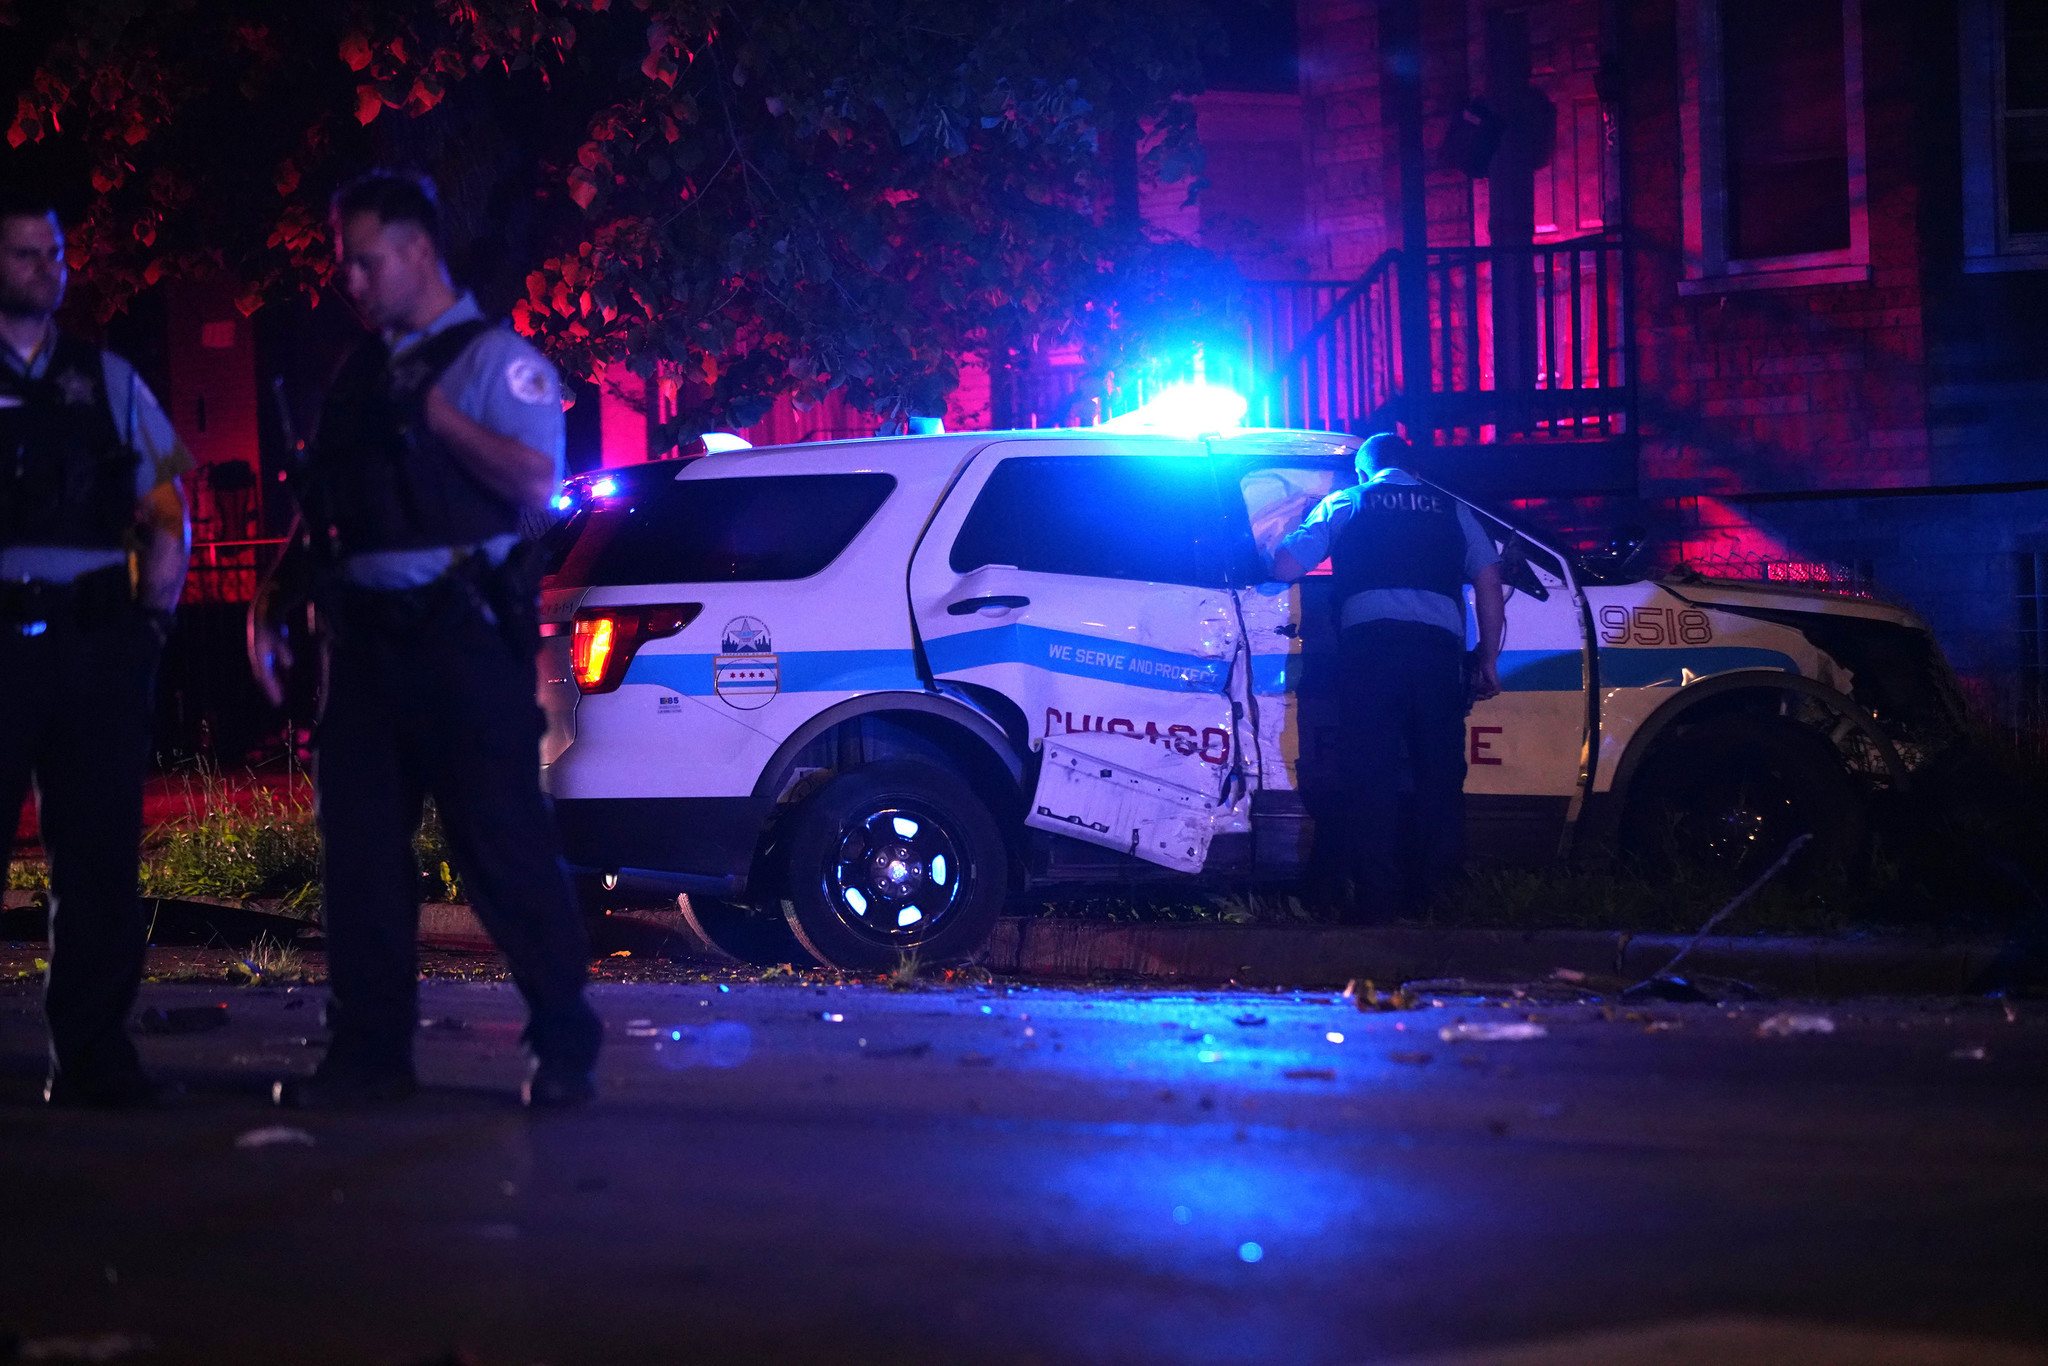 33 shot, 5 fatally, so far in Chicago during Memorial Day weekend